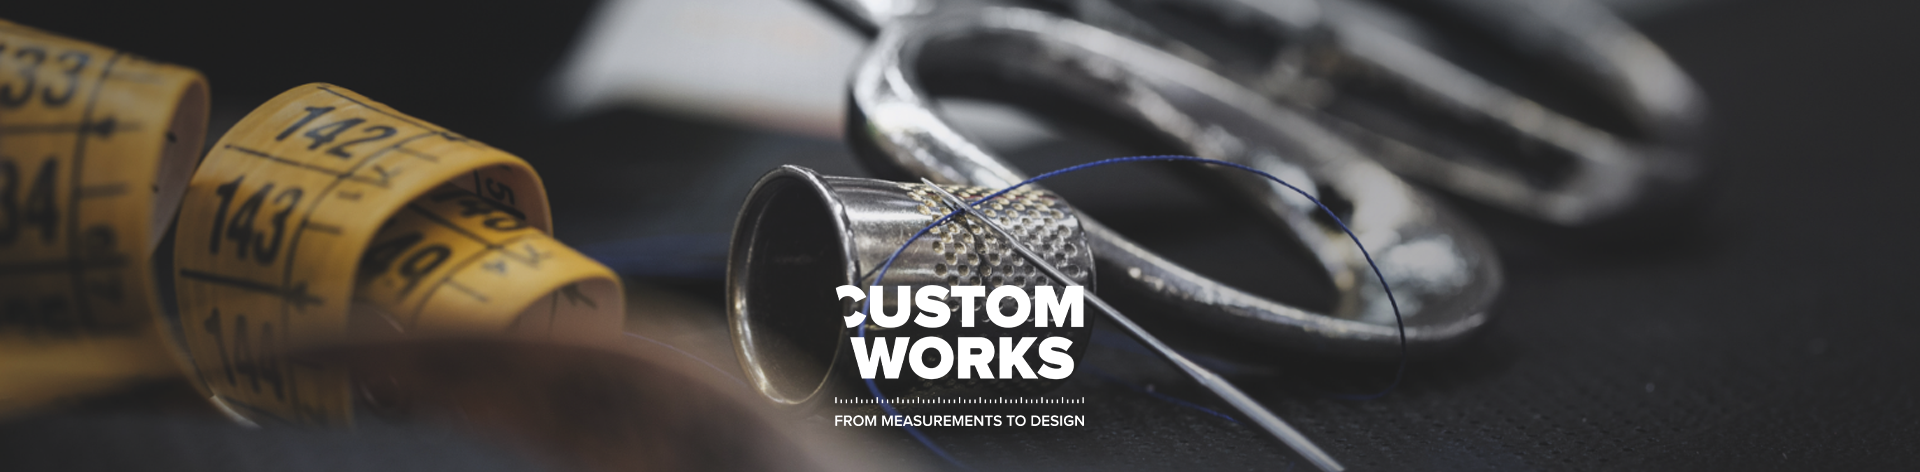 Banner from measurement to design